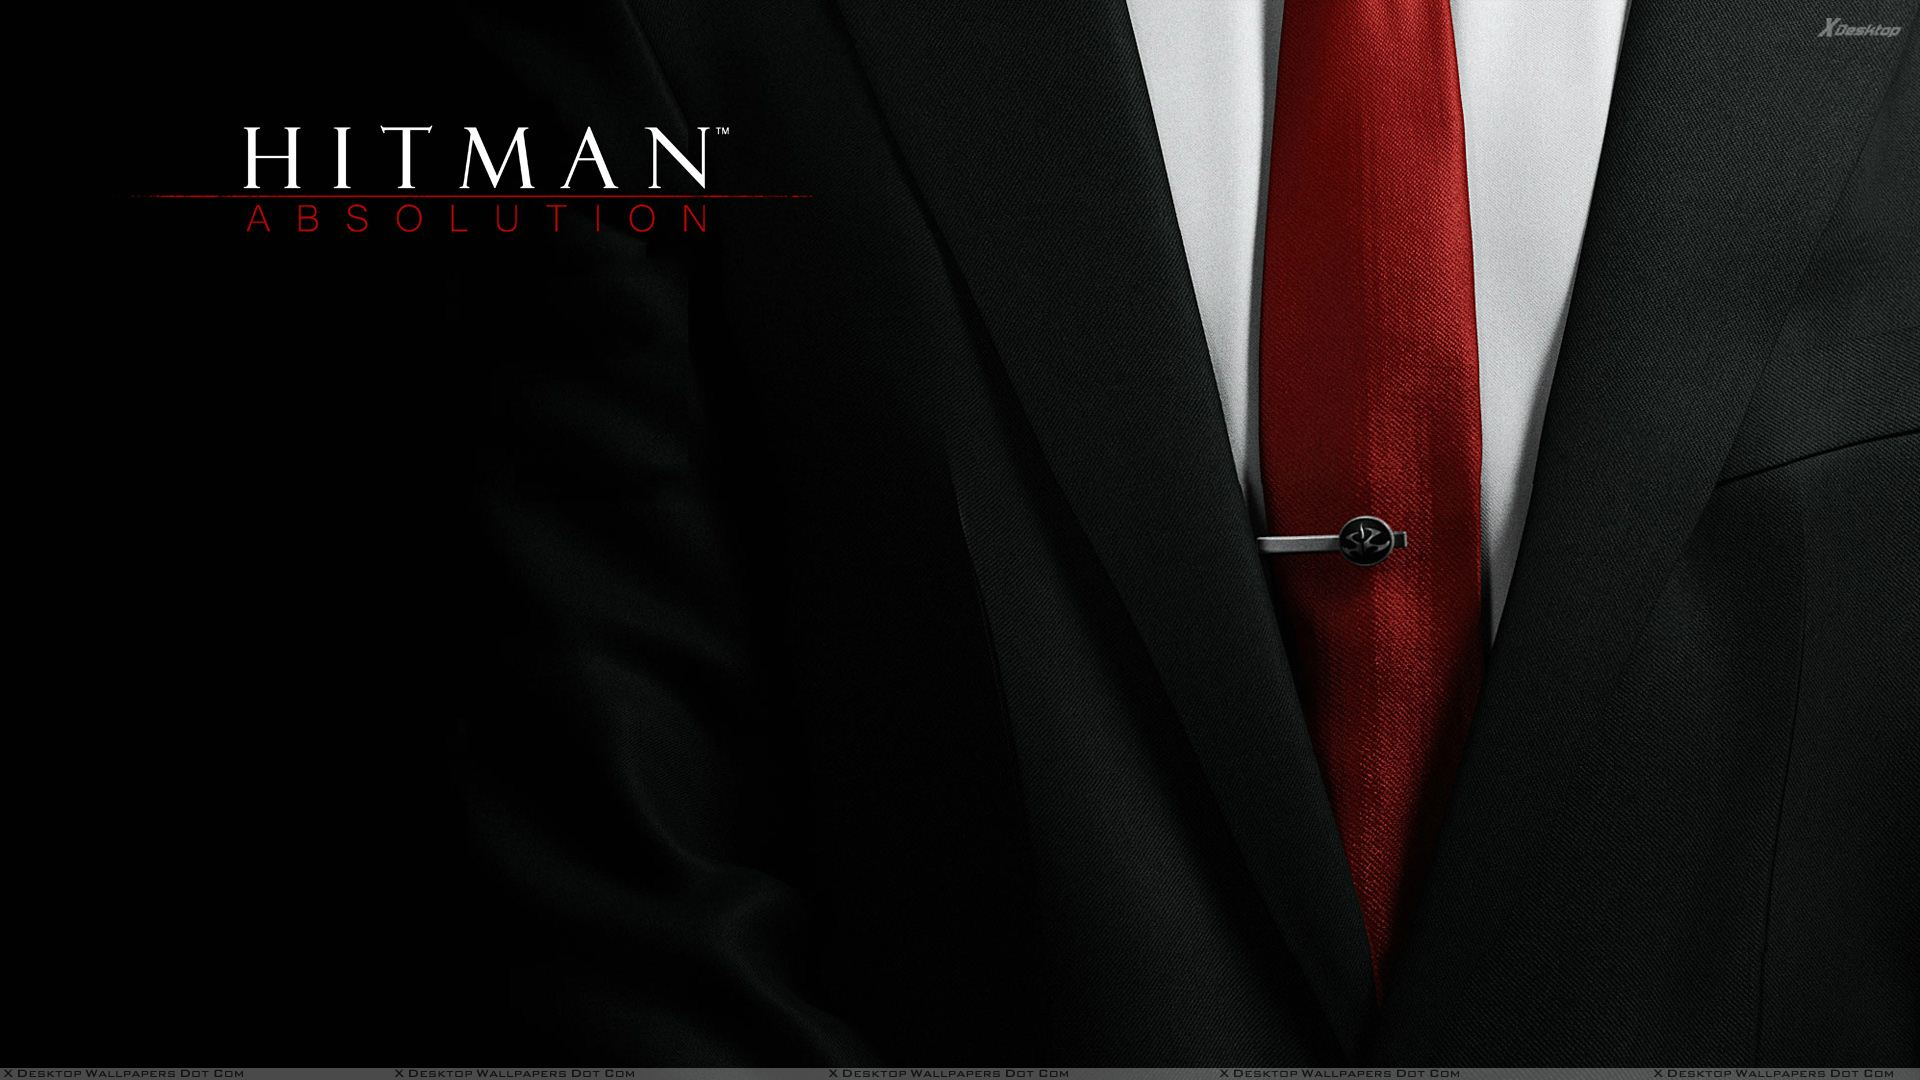 hitman absolution red tie wallpaper